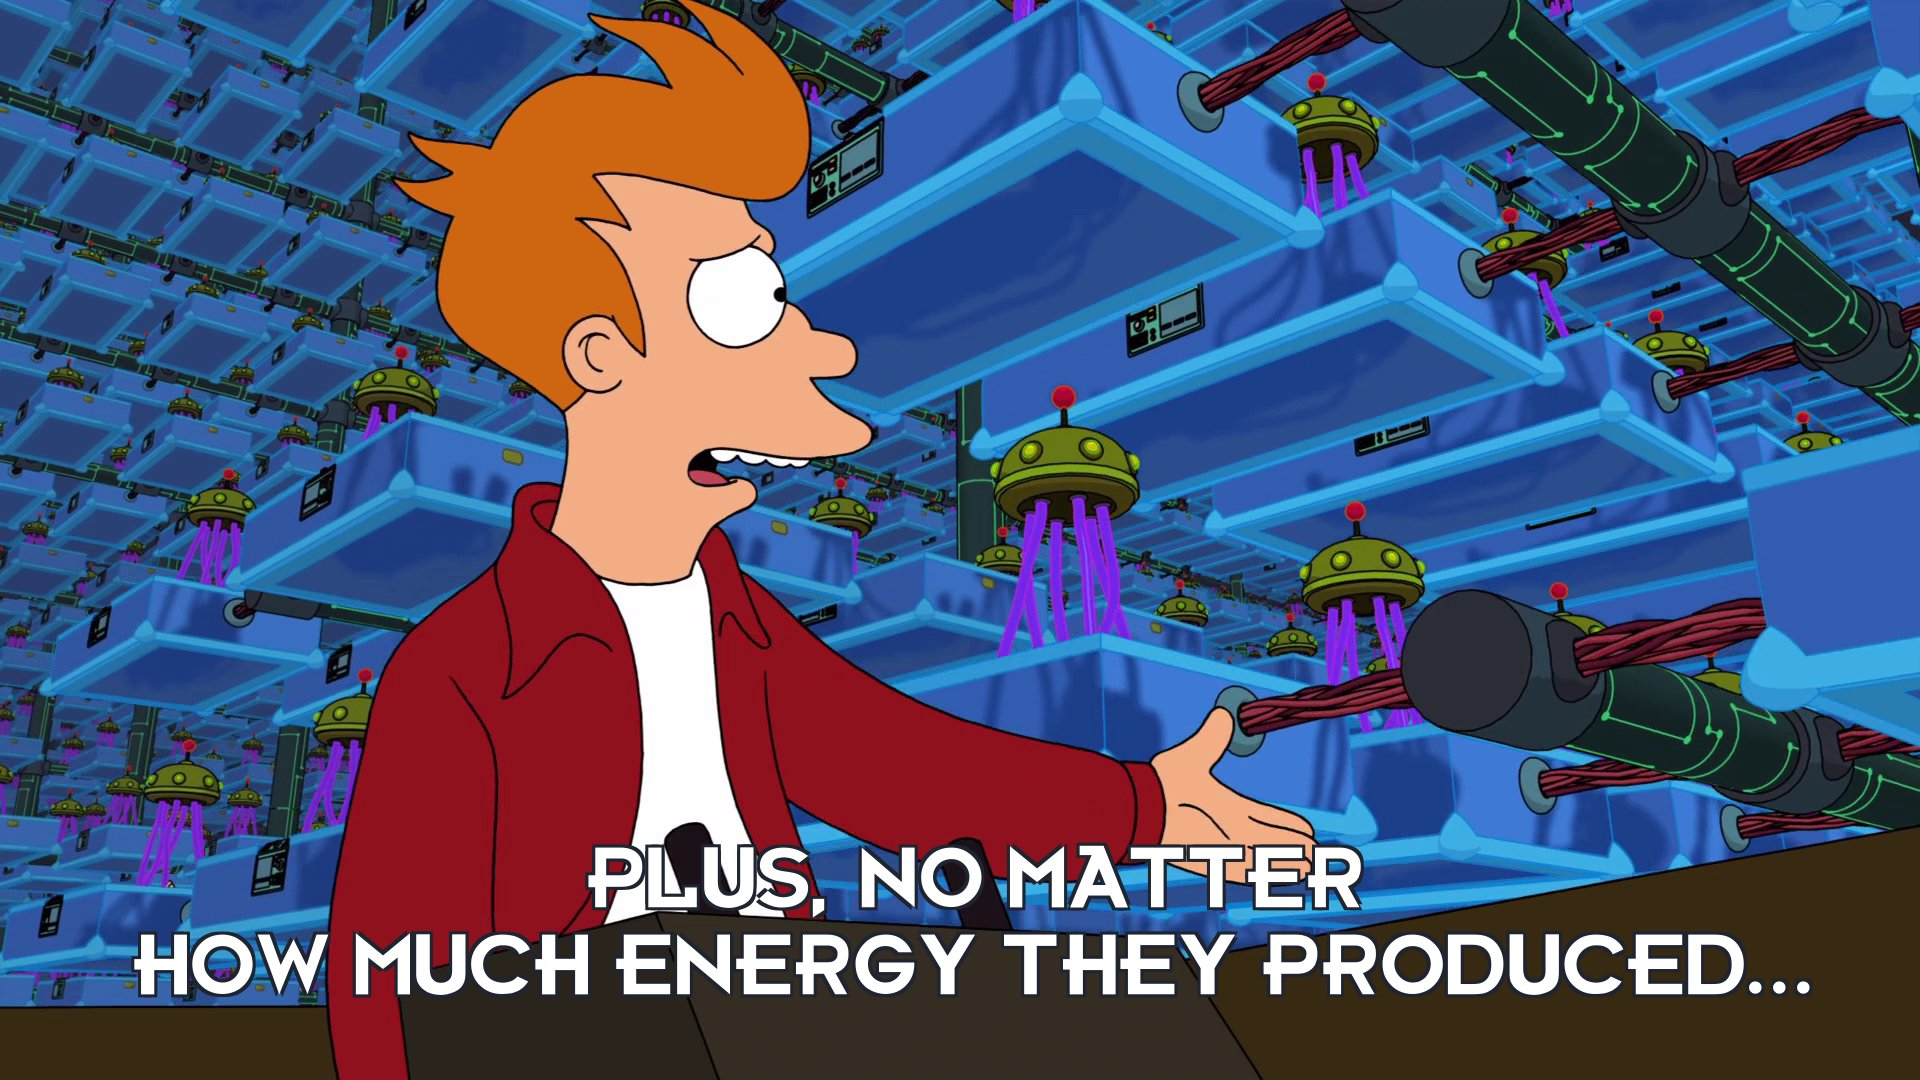 Philip J Fry: Plus, no matter how much energy they produced...